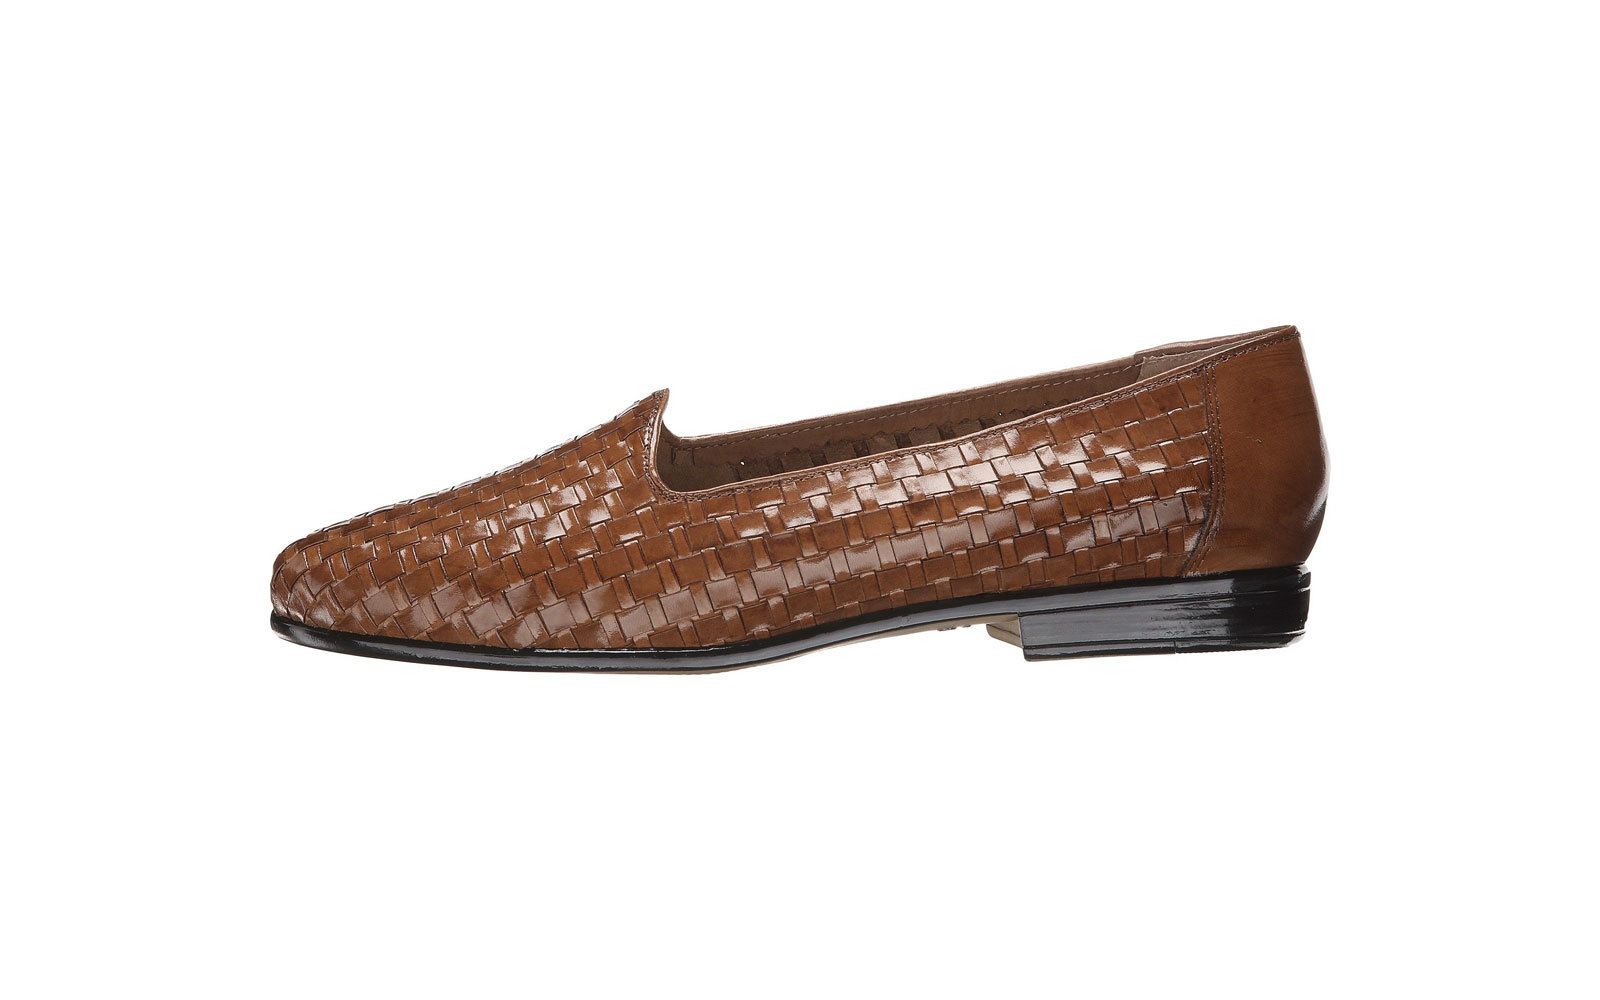 The Woven Shoe: Trotters Liz Loafer